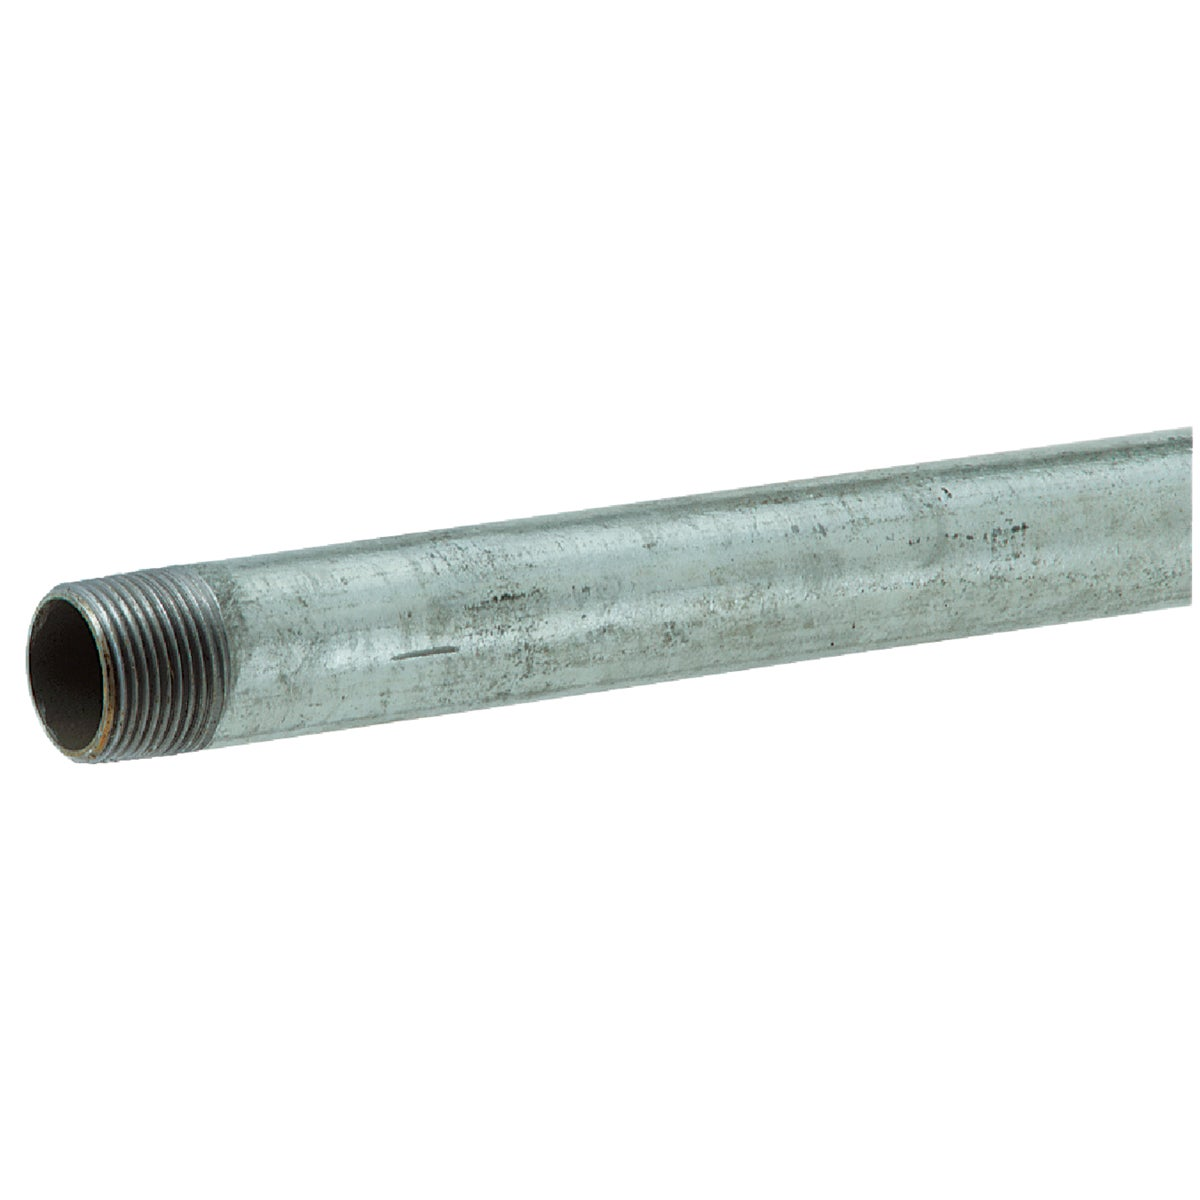 3/4X36 GALV RDI-CT PIPE - 3/4X36 by Southland Pipe Nippl